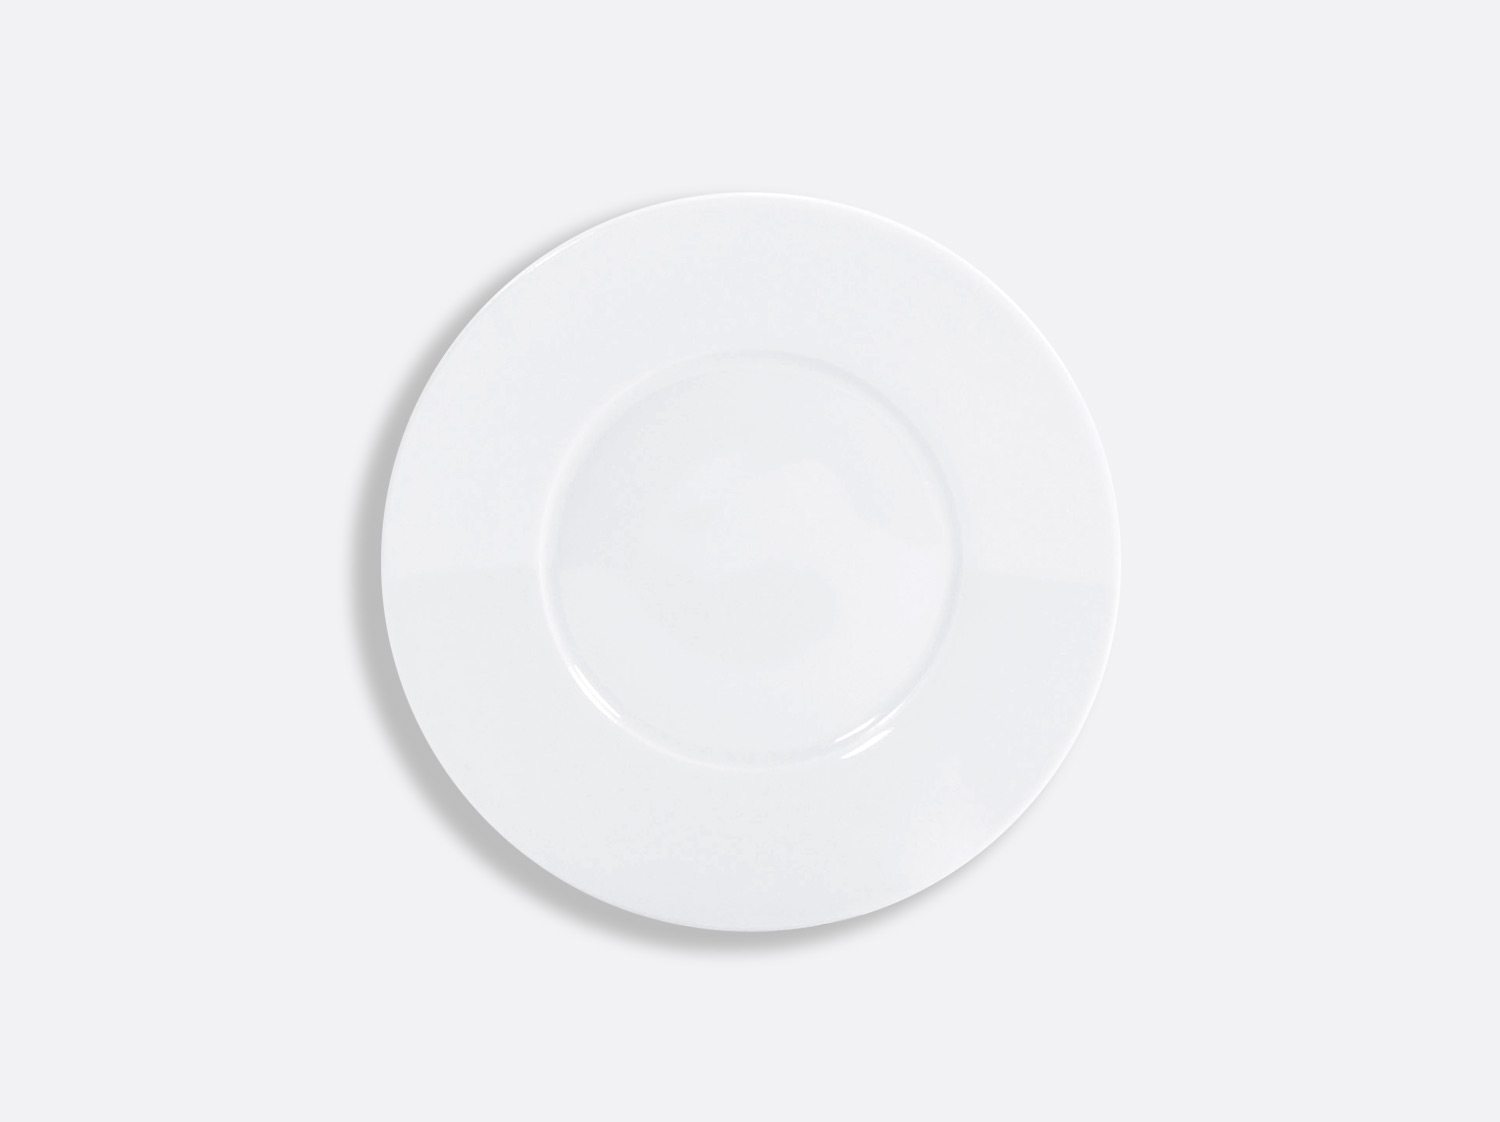 China Plate 16 cm of the collection Astre blanc | Bernardaud